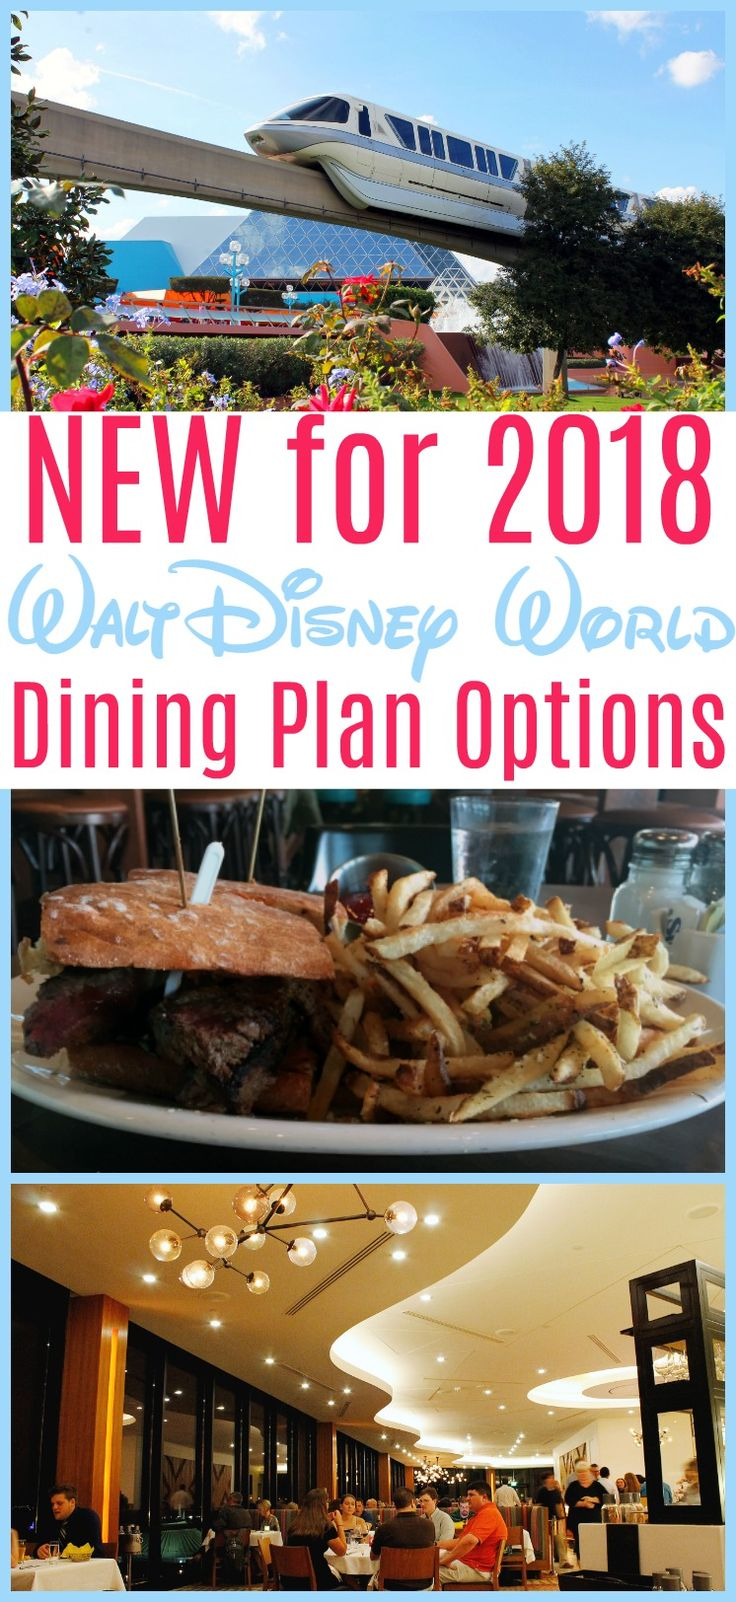 Disney just released their new options for the Disney Dining Plan! We break down what you need to know and how it will affect your vacation planning. Disney Dining Plans can help you efficiently navigate your Walt Disney World vacation.